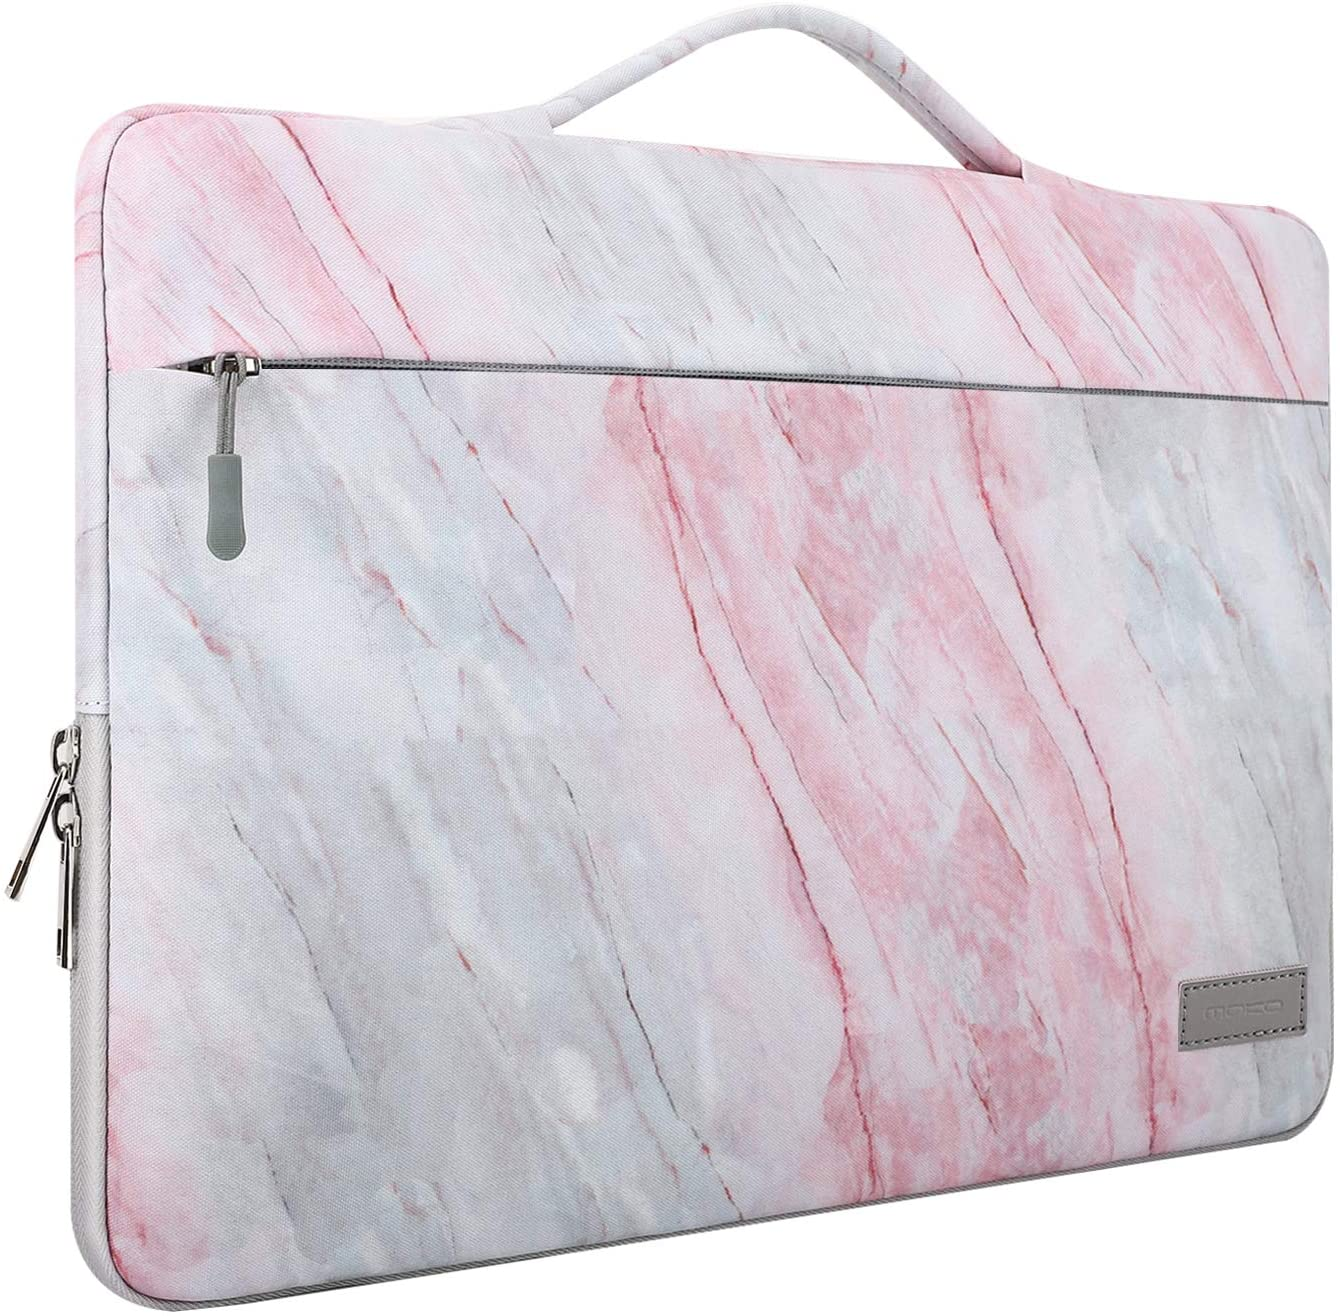 "MoKo 13-13.3 Inch Laptop Sleeve Case Compatible with MacBook Air 13-inch Retina, MacBook Pro 13"", HP Dell Asus Acer Lenove Notebook Computer, Polyester Carrying Bag with Pocket, Pink Gray Marble"